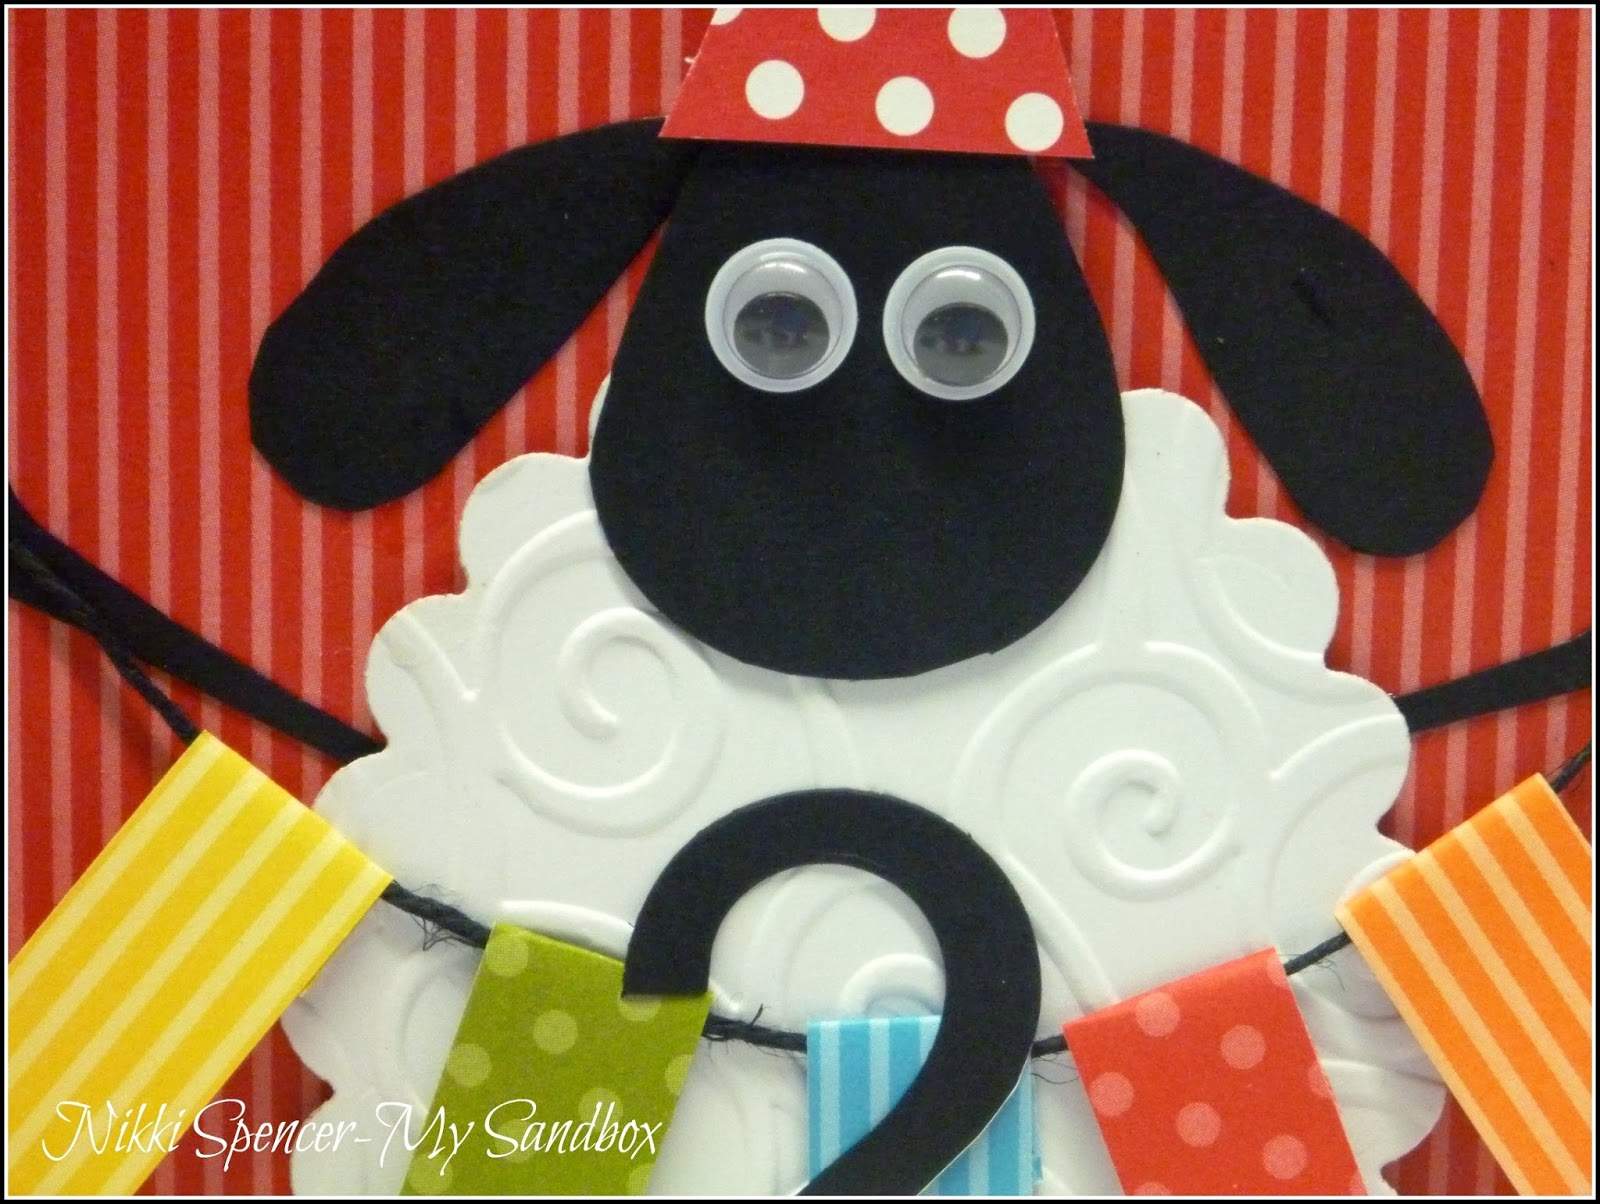 My Sandbox Shaun the Sheep – Shaun the Sheep Birthday Card